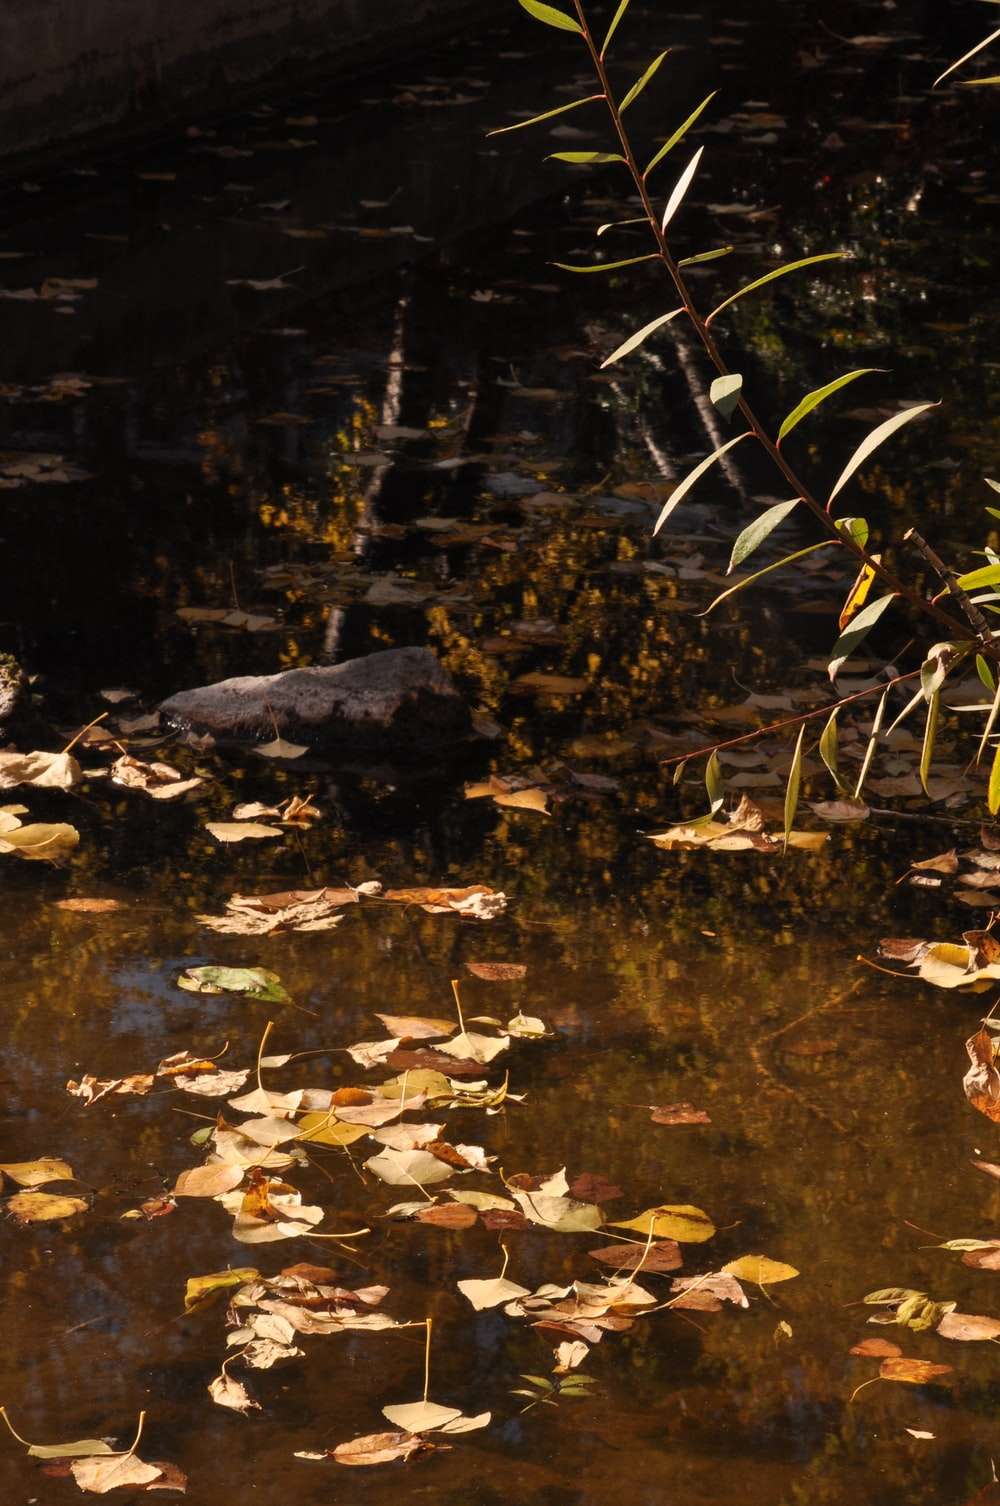 brown leaves on body of water